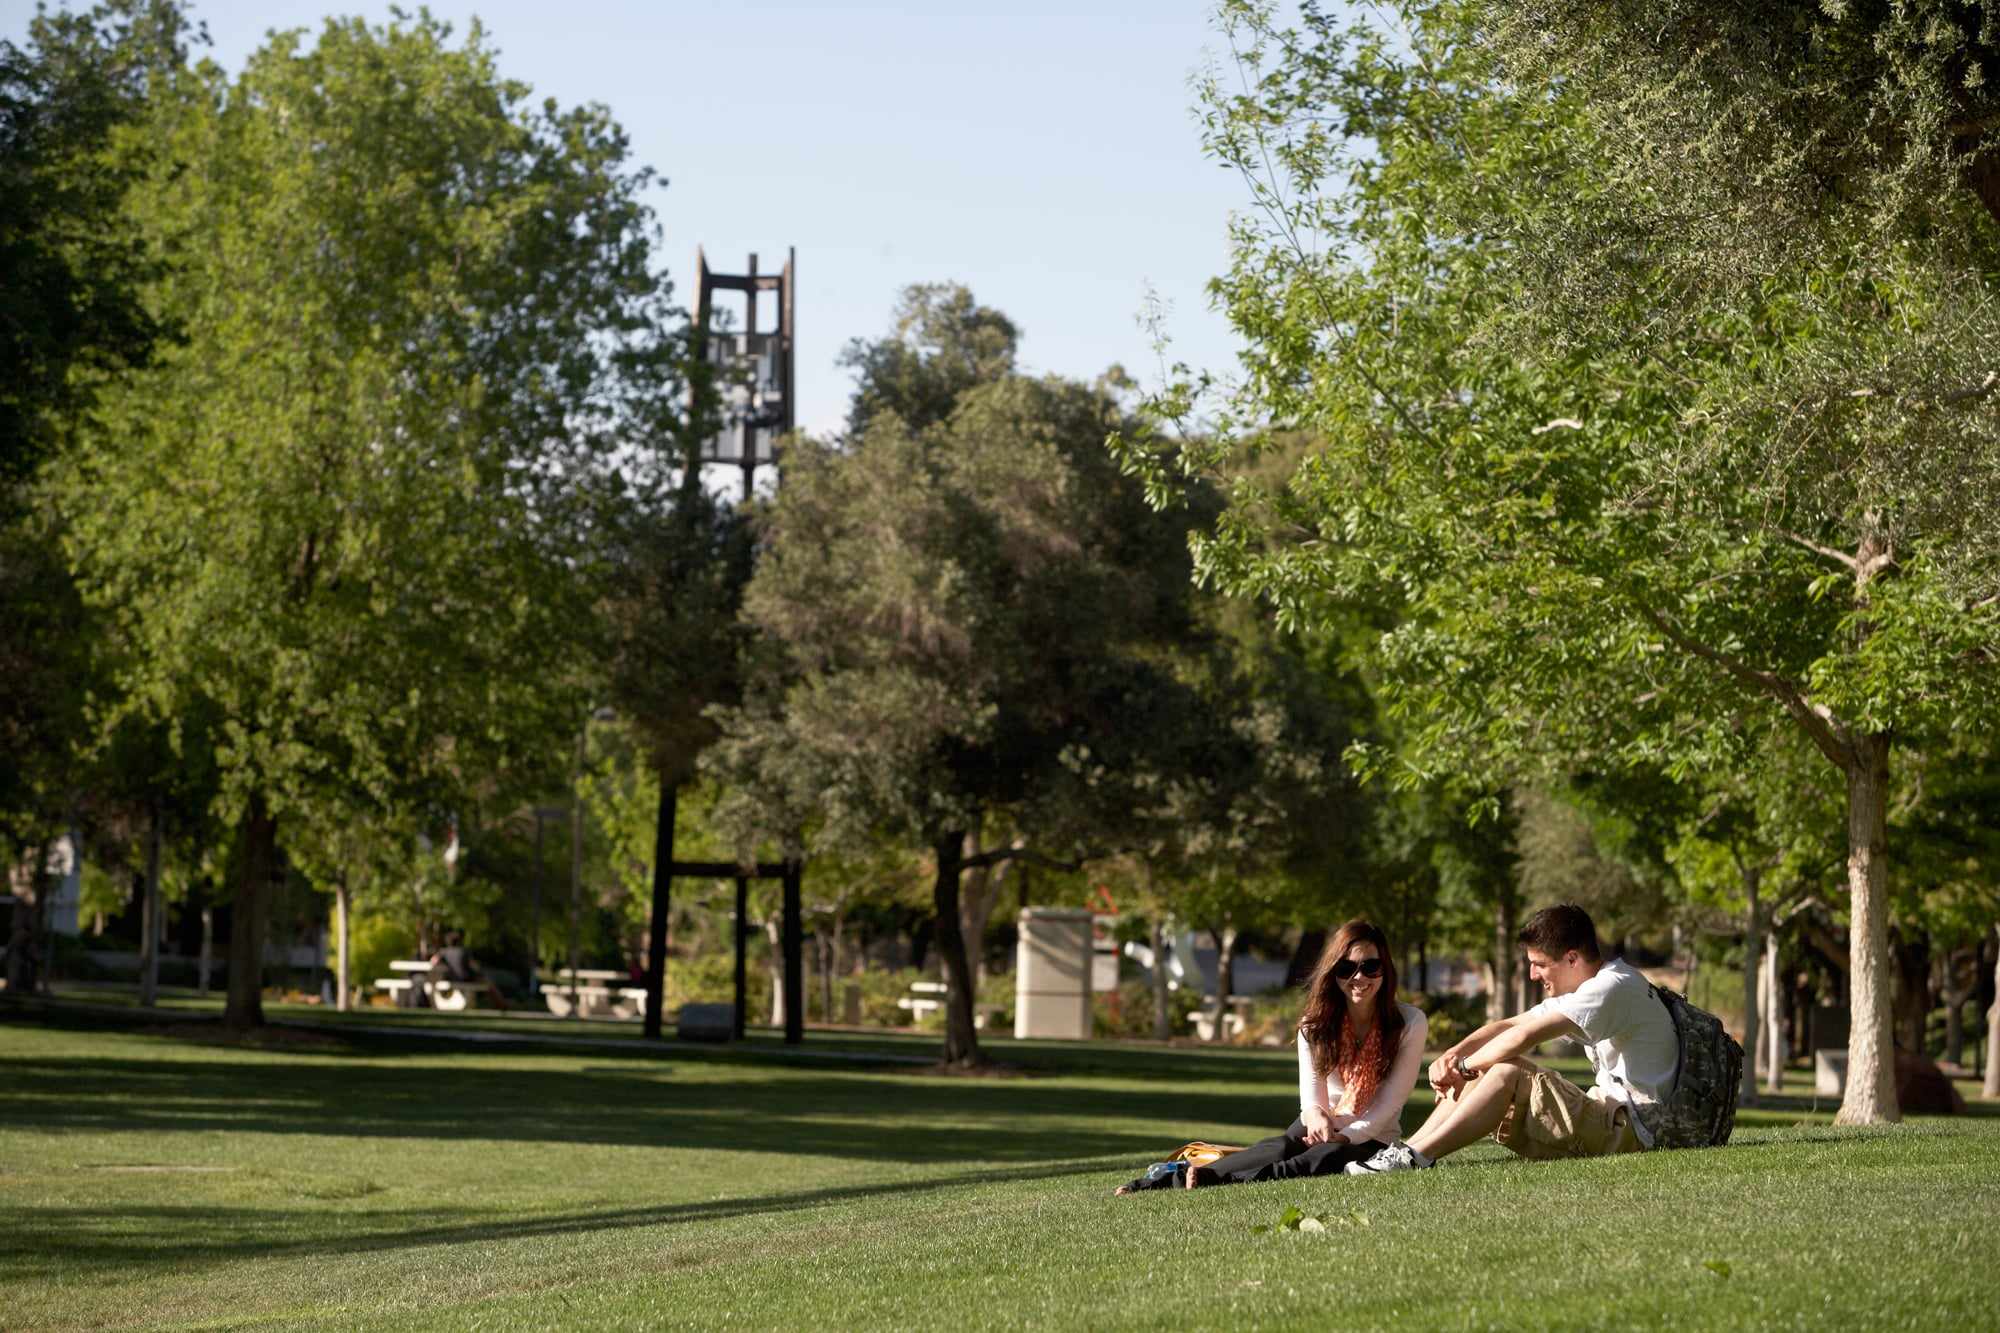 A male and female student sit together in a grassy area on the UNLV campus.